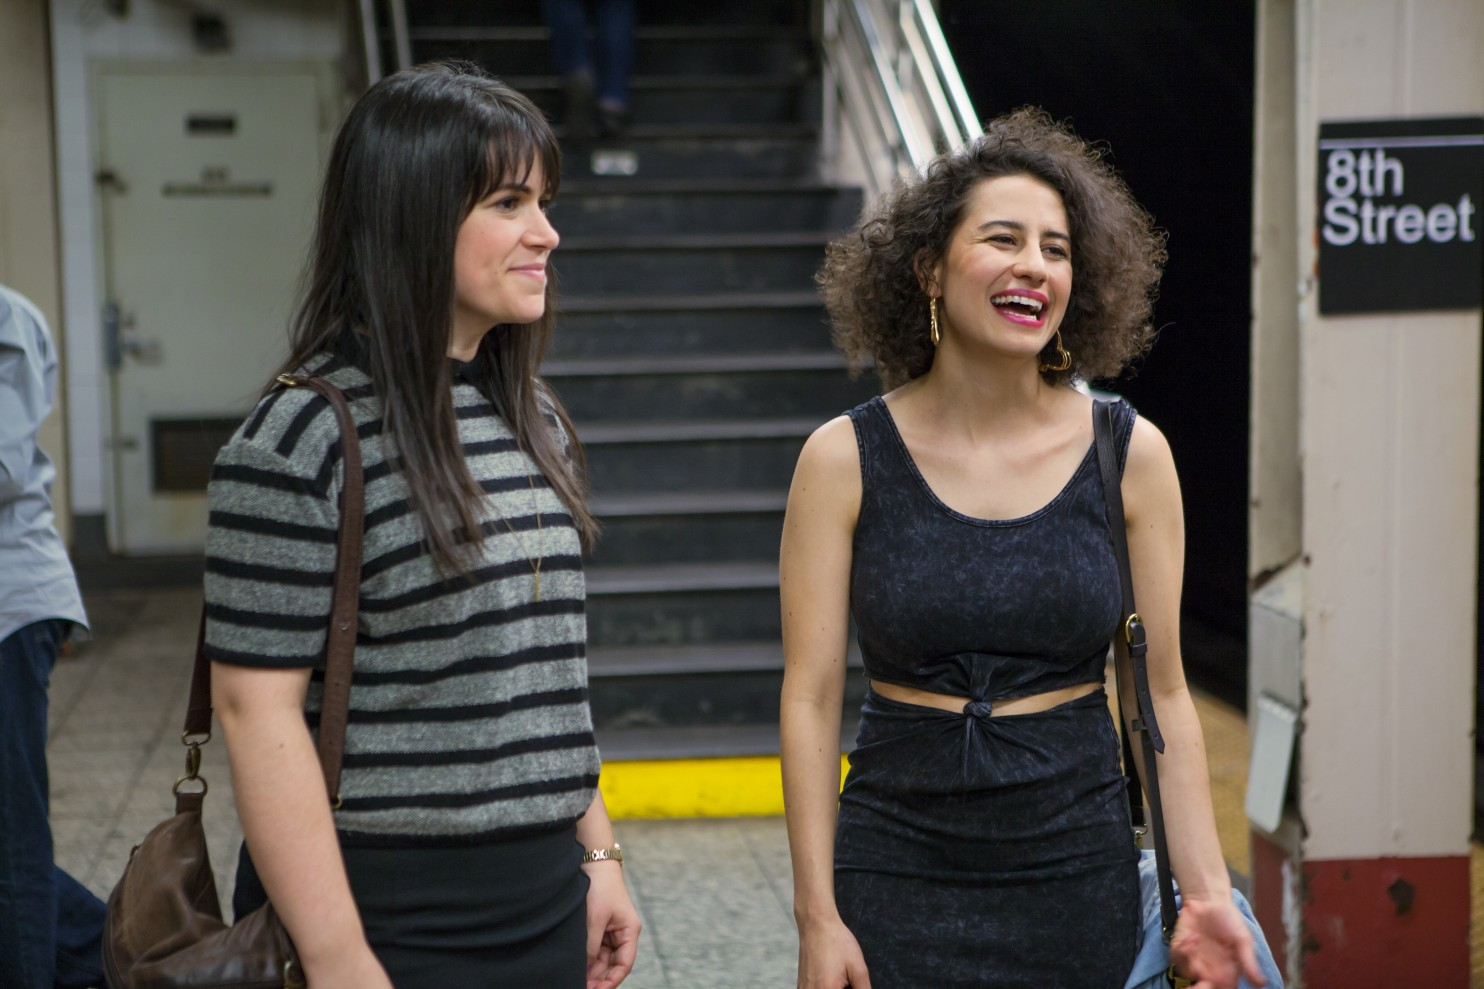 """While we anxiously await the return of """"Broad City,"""" we can listen to the show's soon-to-be-released original soundtrack!"""